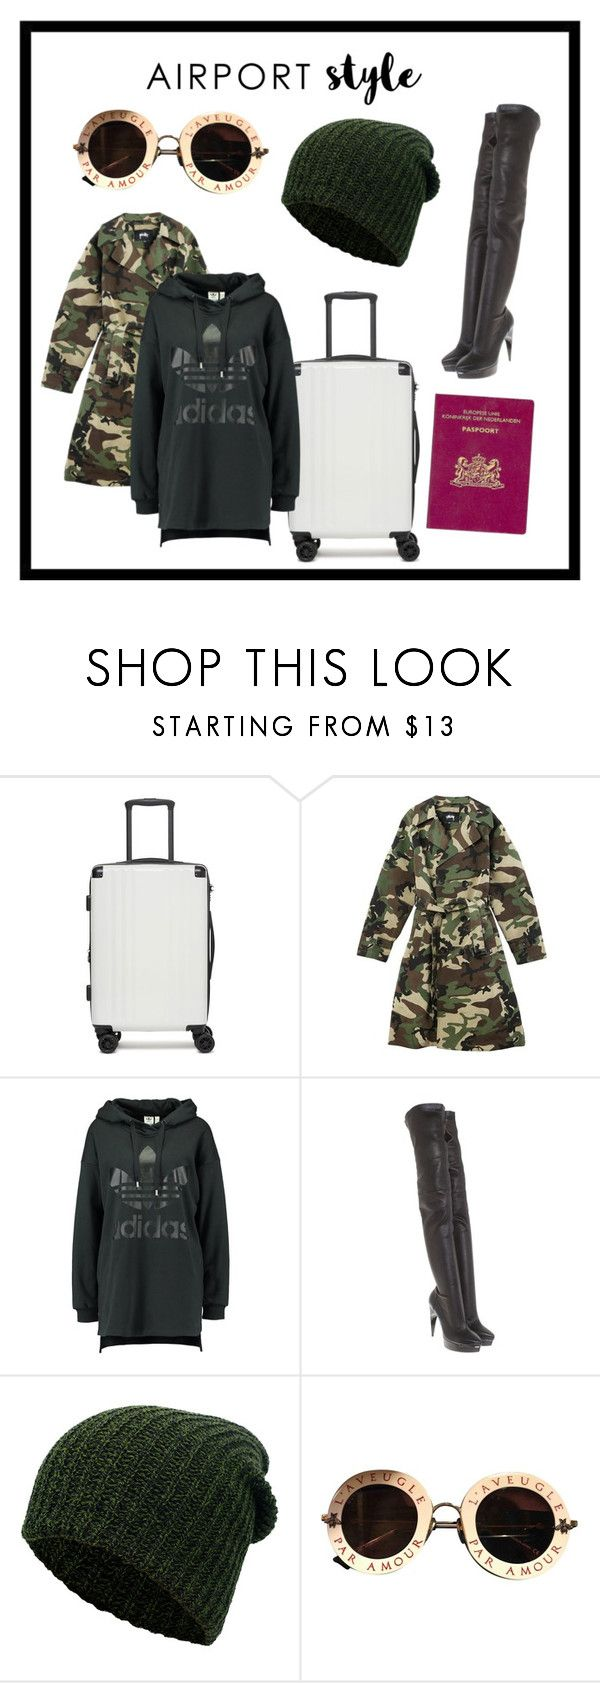 """Winter Airport Outfit"" by salsafar ❤ liked on Polyvore featuring CalPak, adidas Originals, Lanvin, Simplicity, Gucci, POL, Boots, adidas, camo and airportstyle"